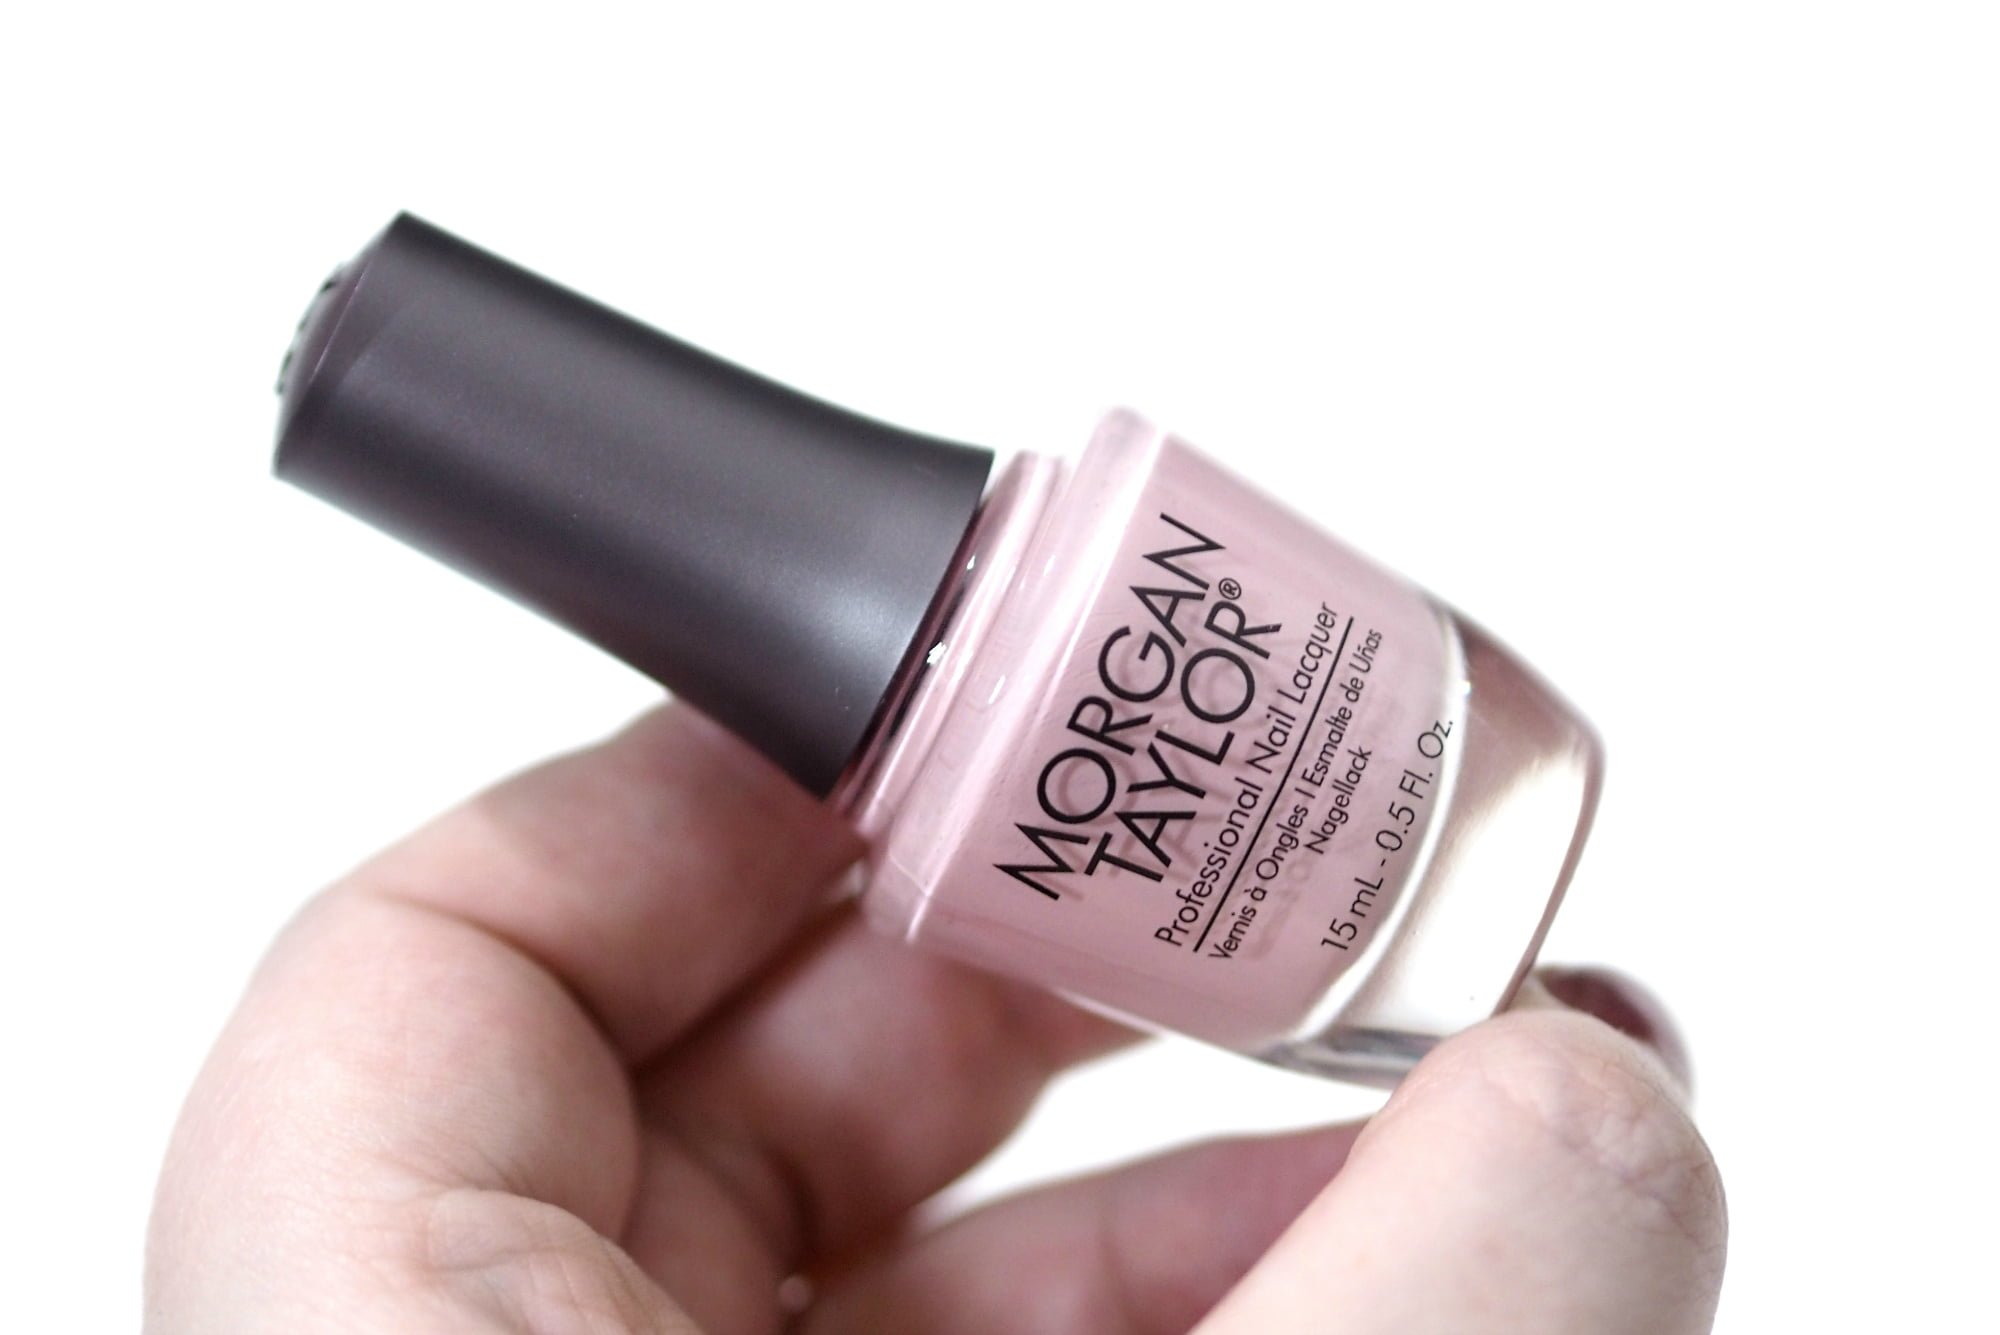 Morgan Taylor The Colour Of Petals Nail Polish Collection Review and Swatches